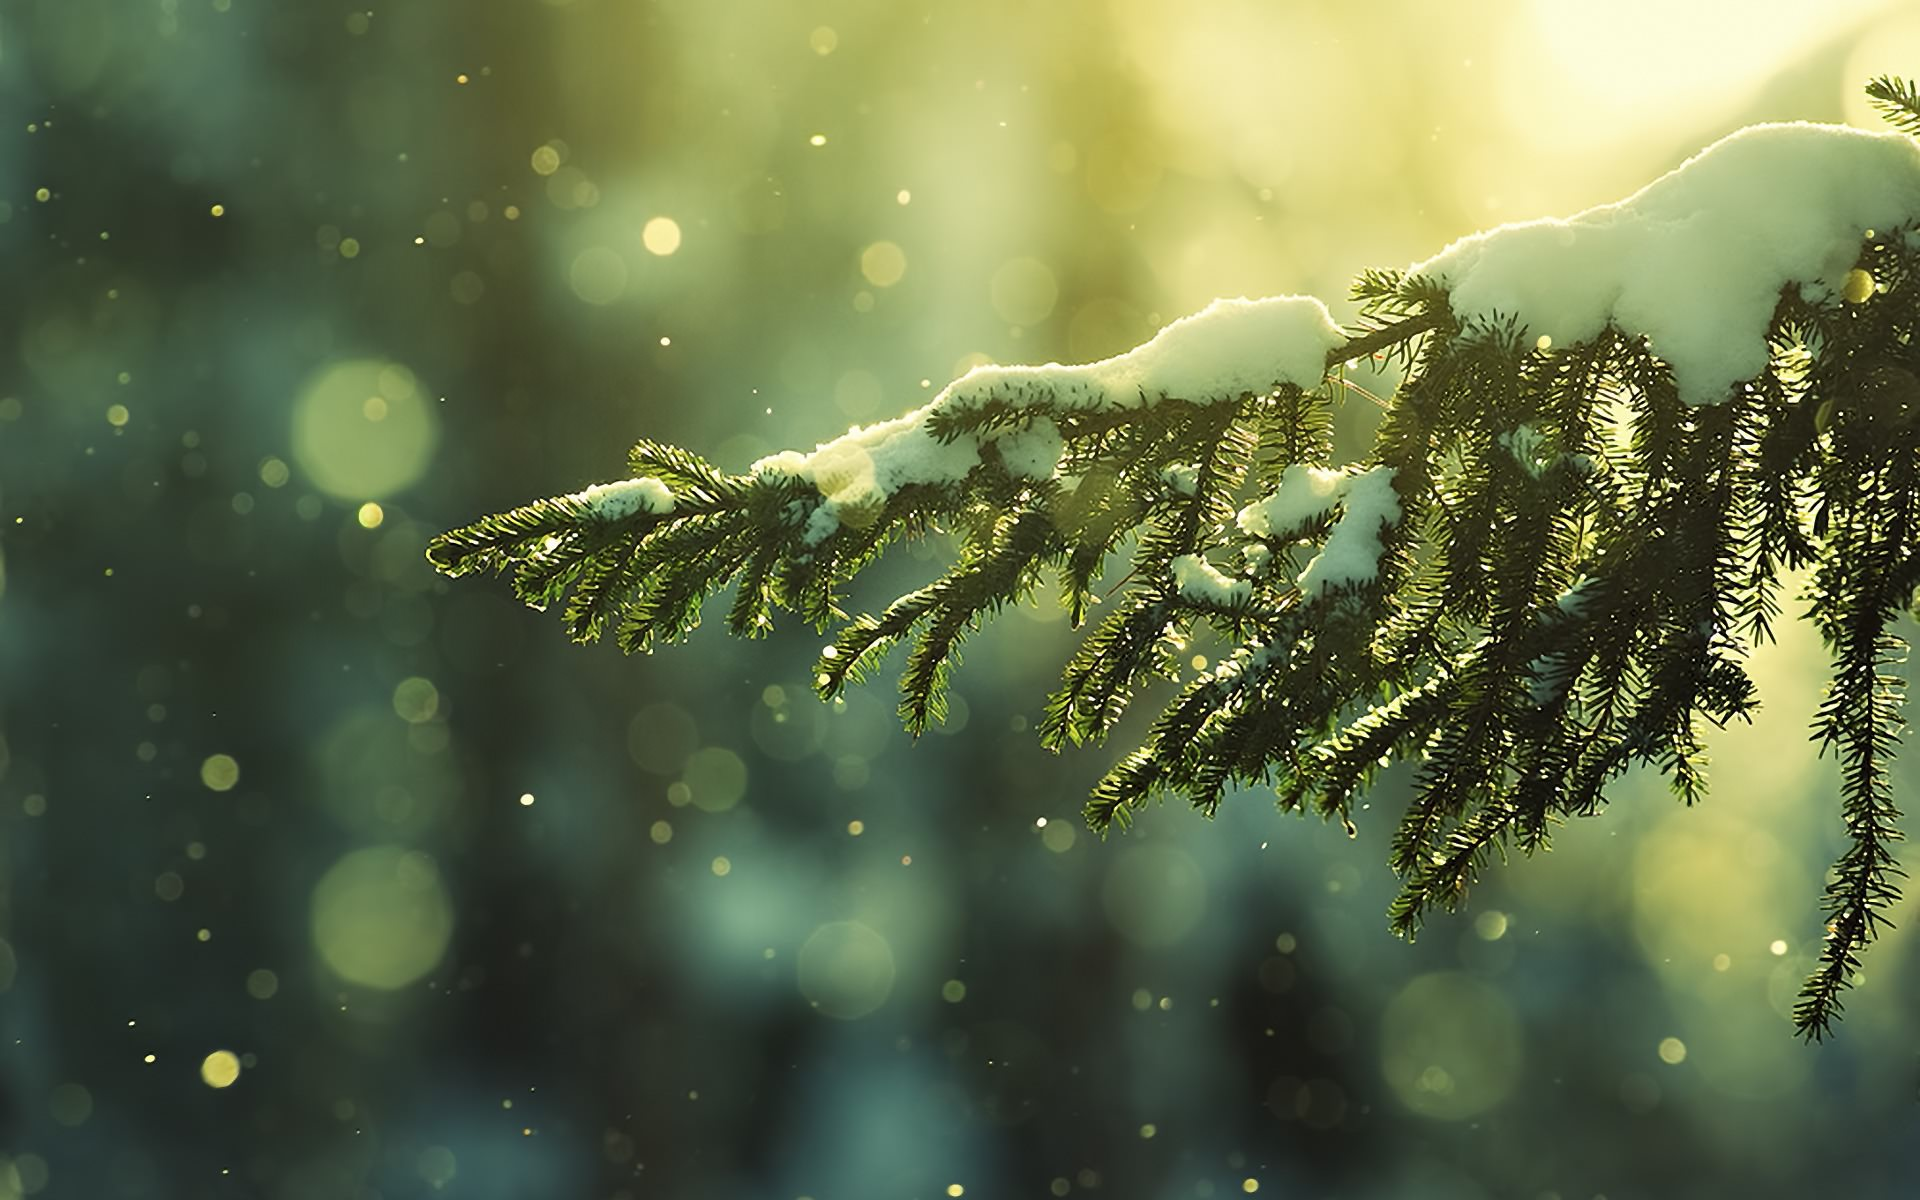 Frozen-Tree-Background.jpg